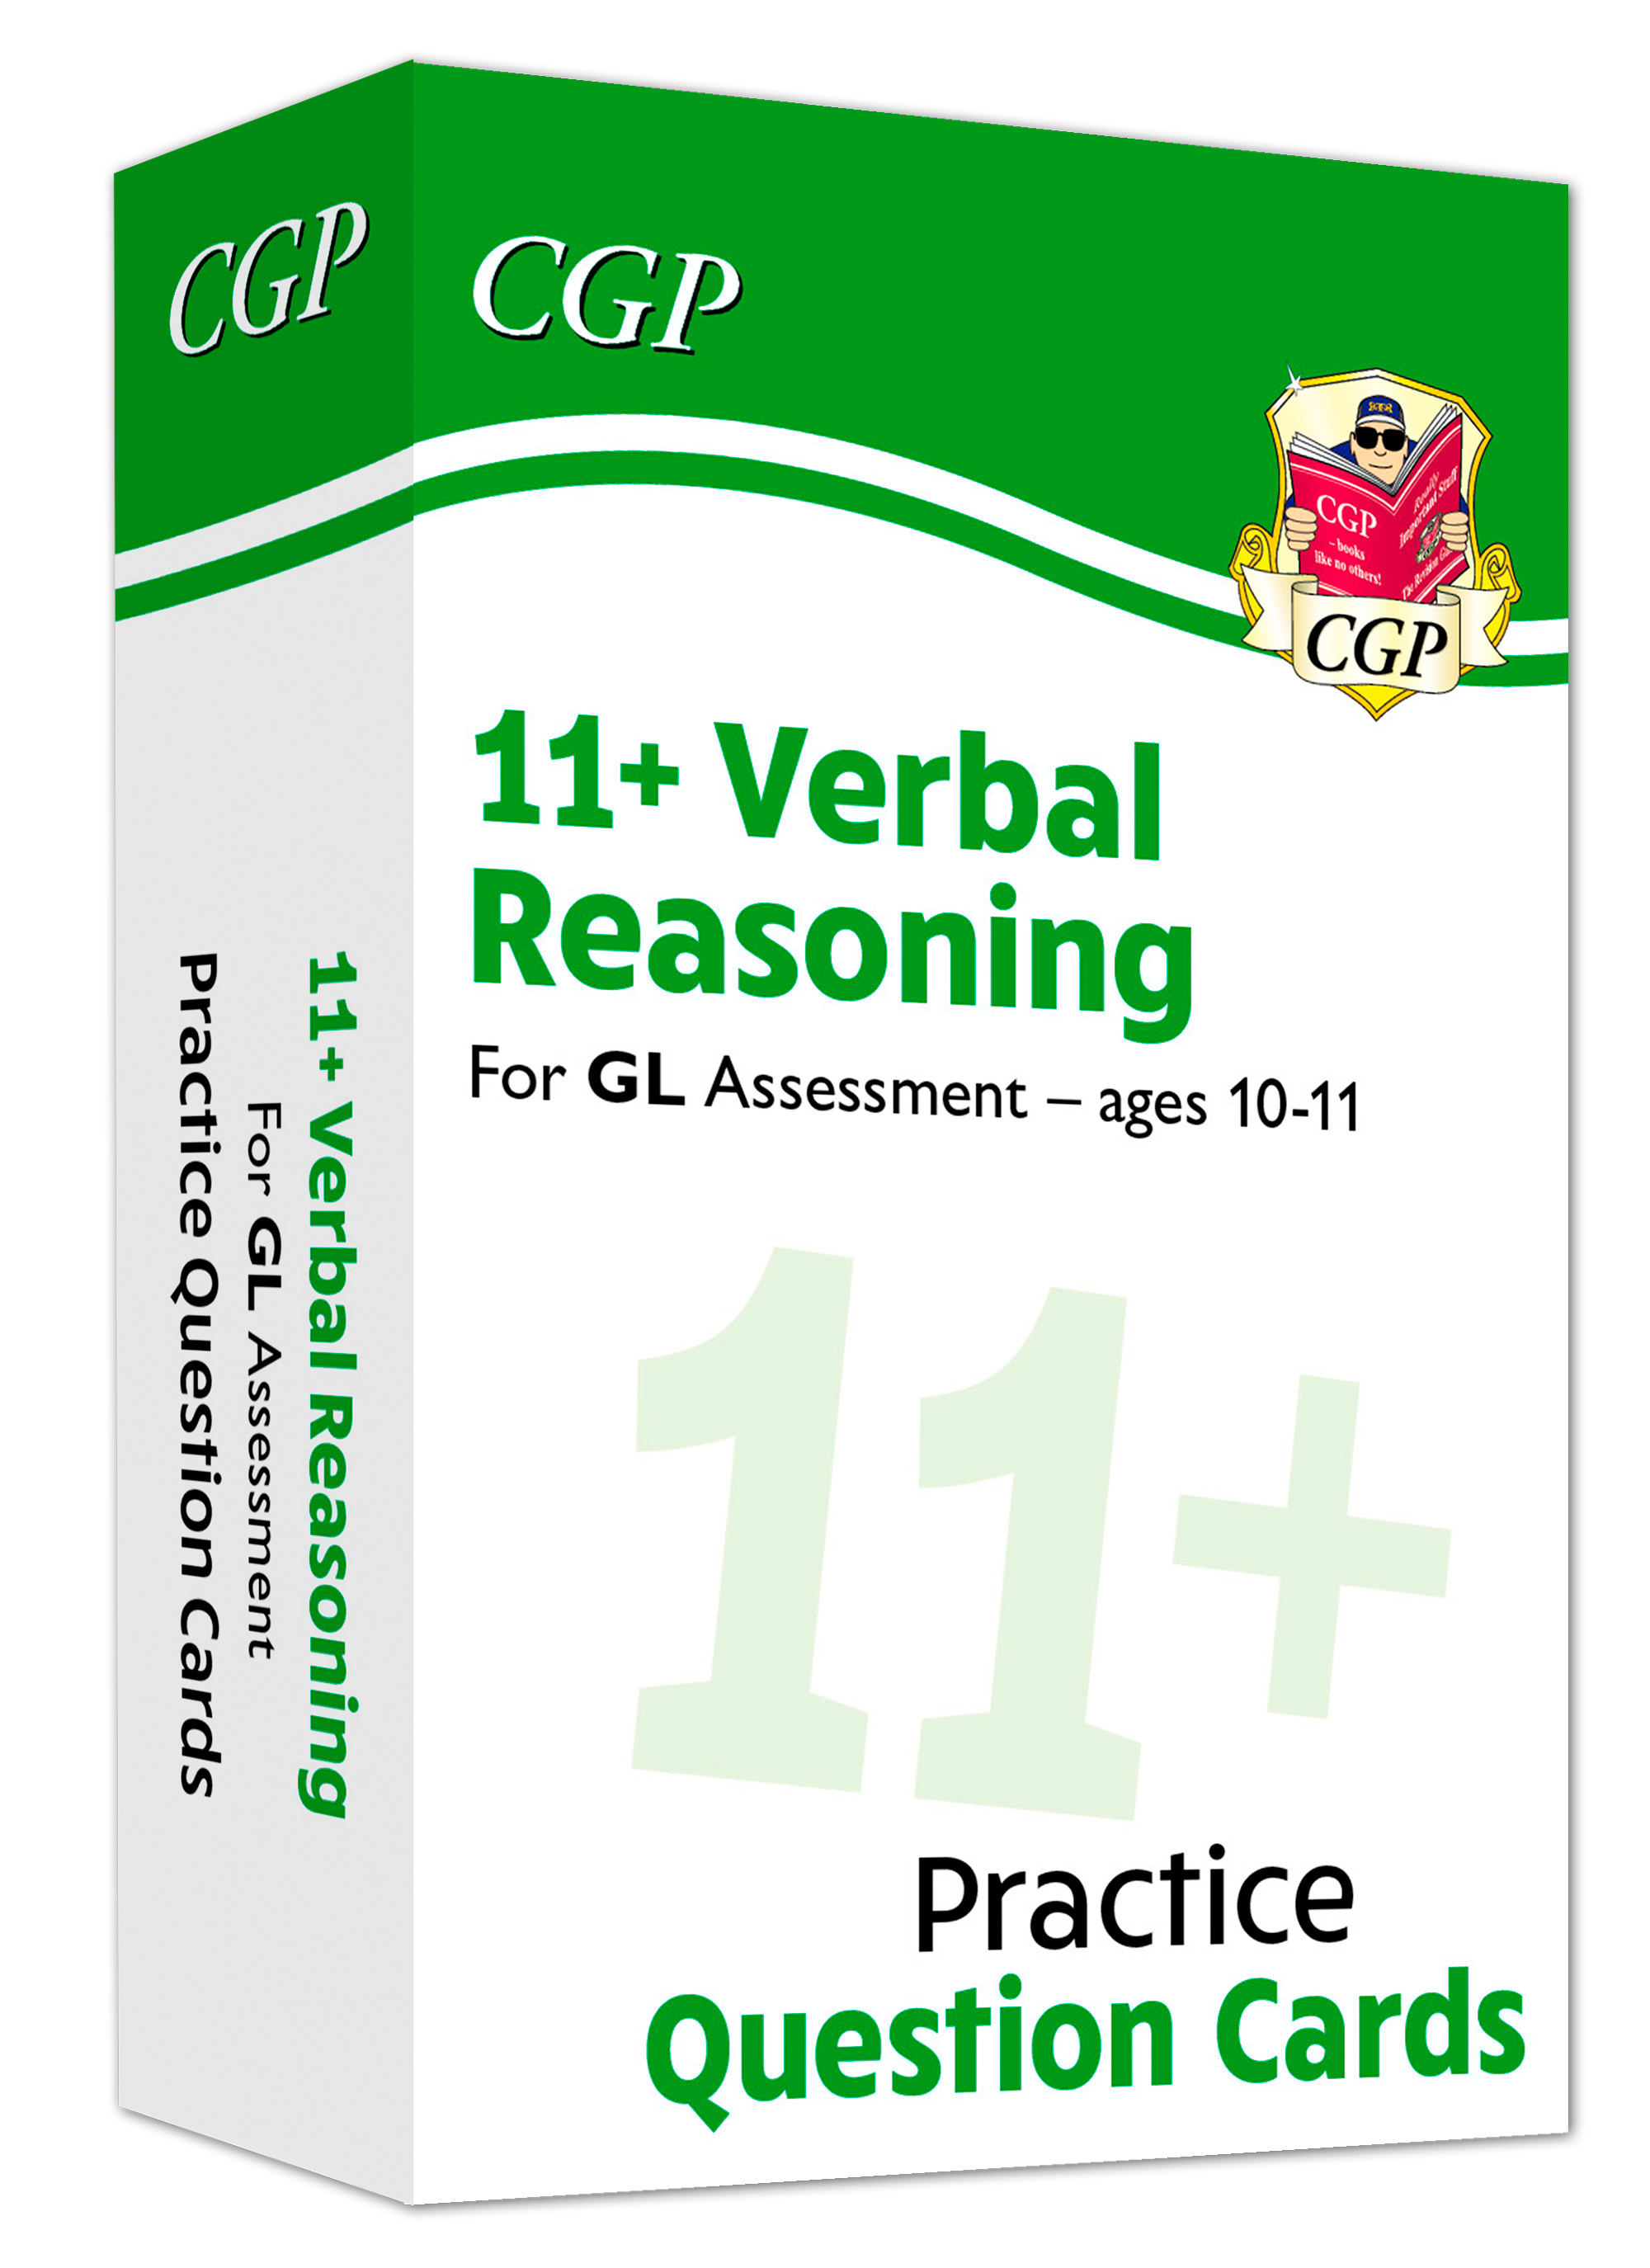 V6FE1 - New 11+ GL Verbal Reasoning Practice Question Cards - Ages 10-11